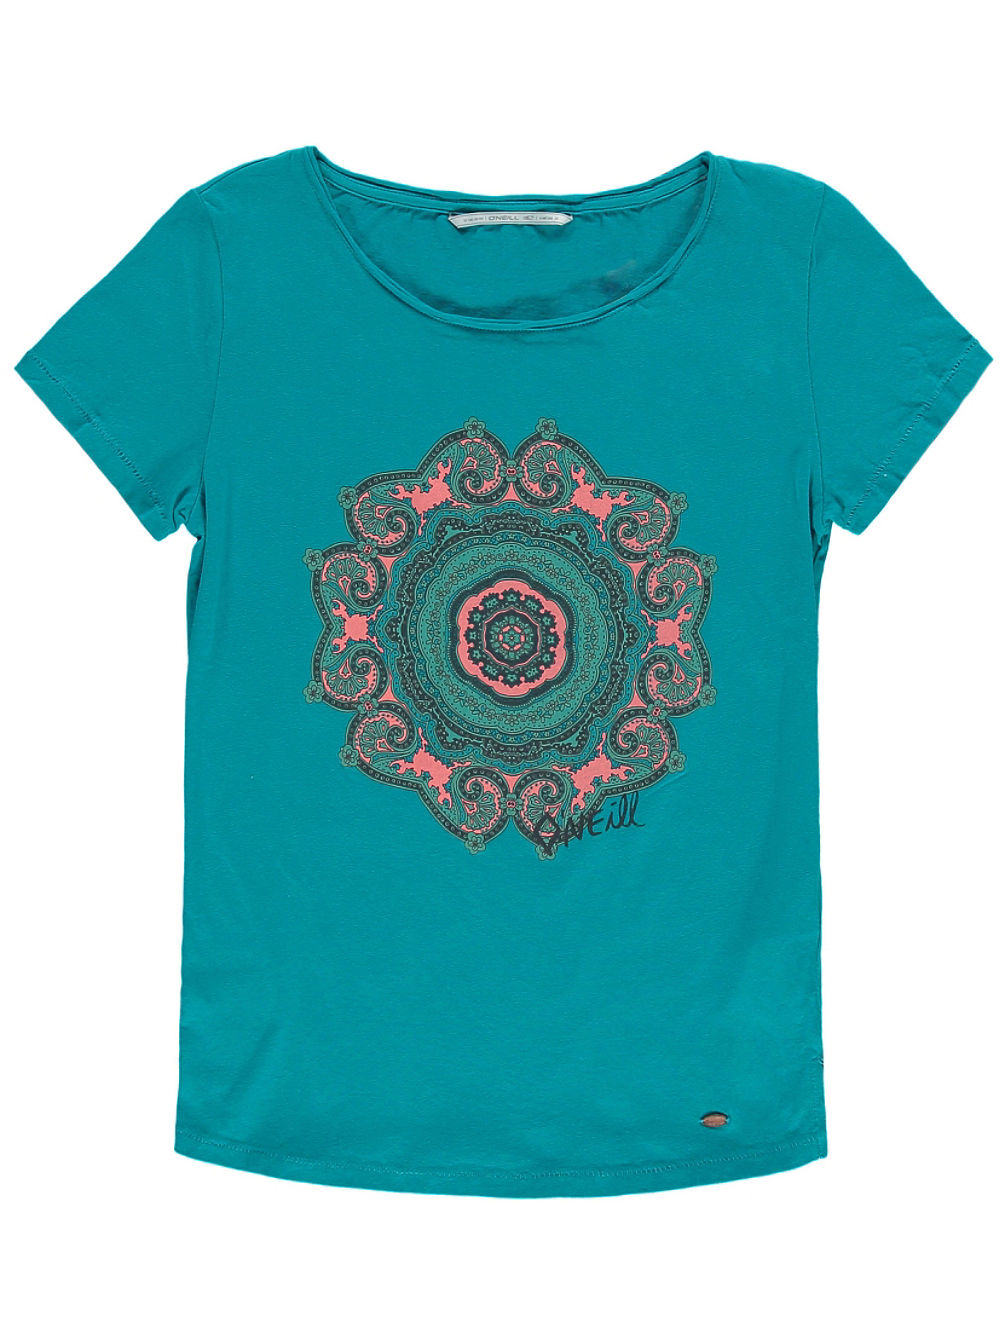 mandala-t-shirt-sandals-girls